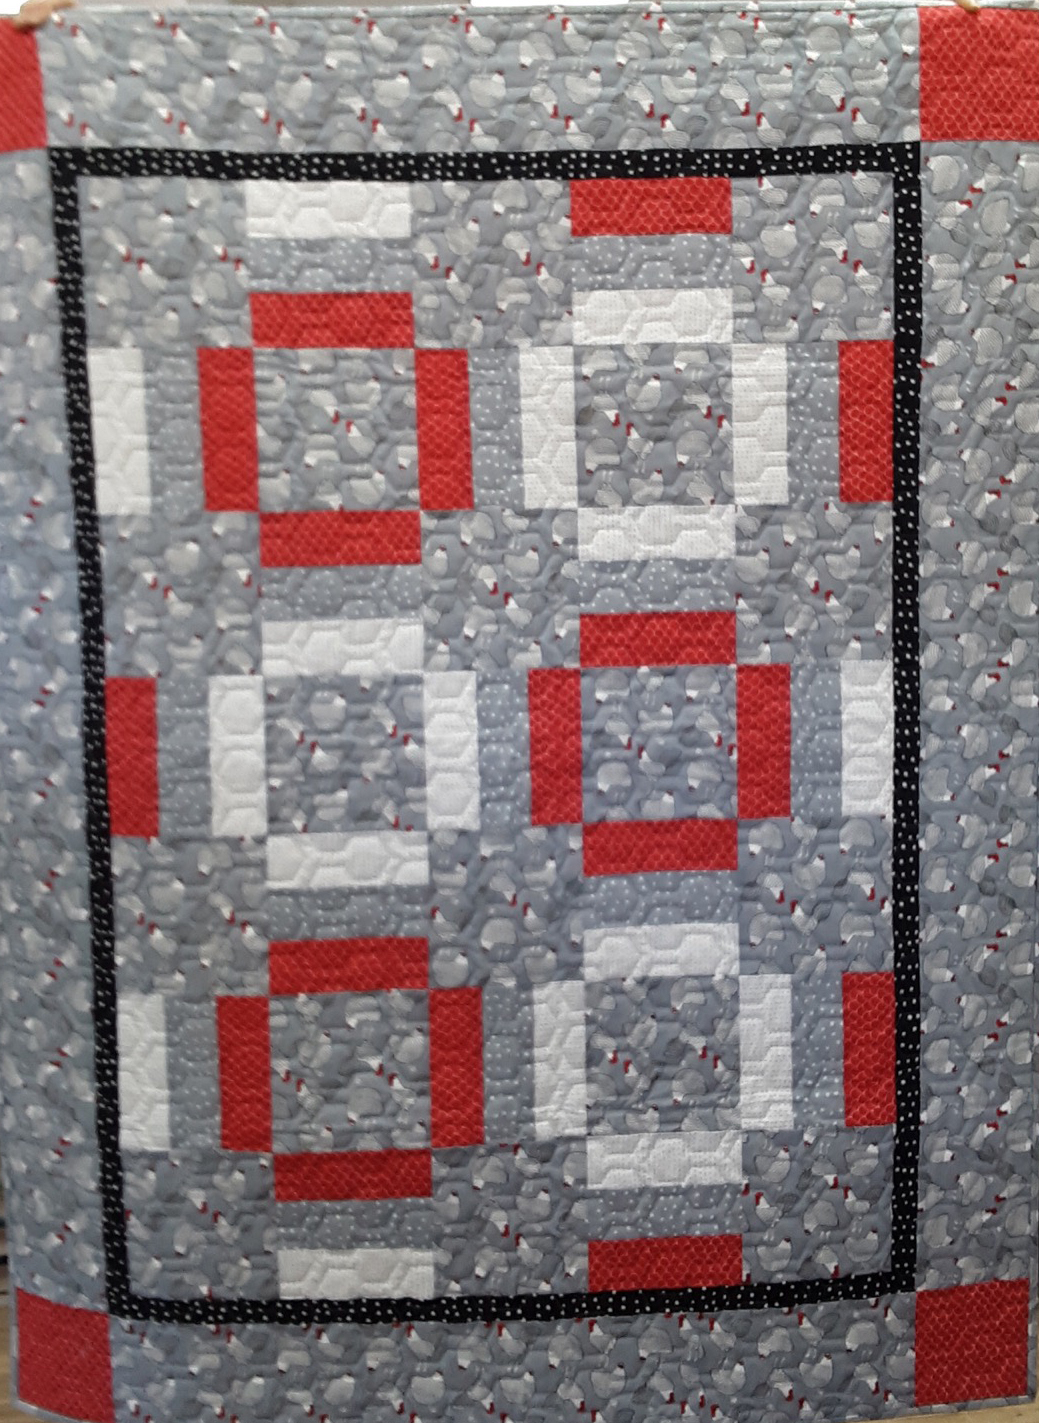 V.201 QUILTING LINES PATTERNS ON CD-ROM QUILT